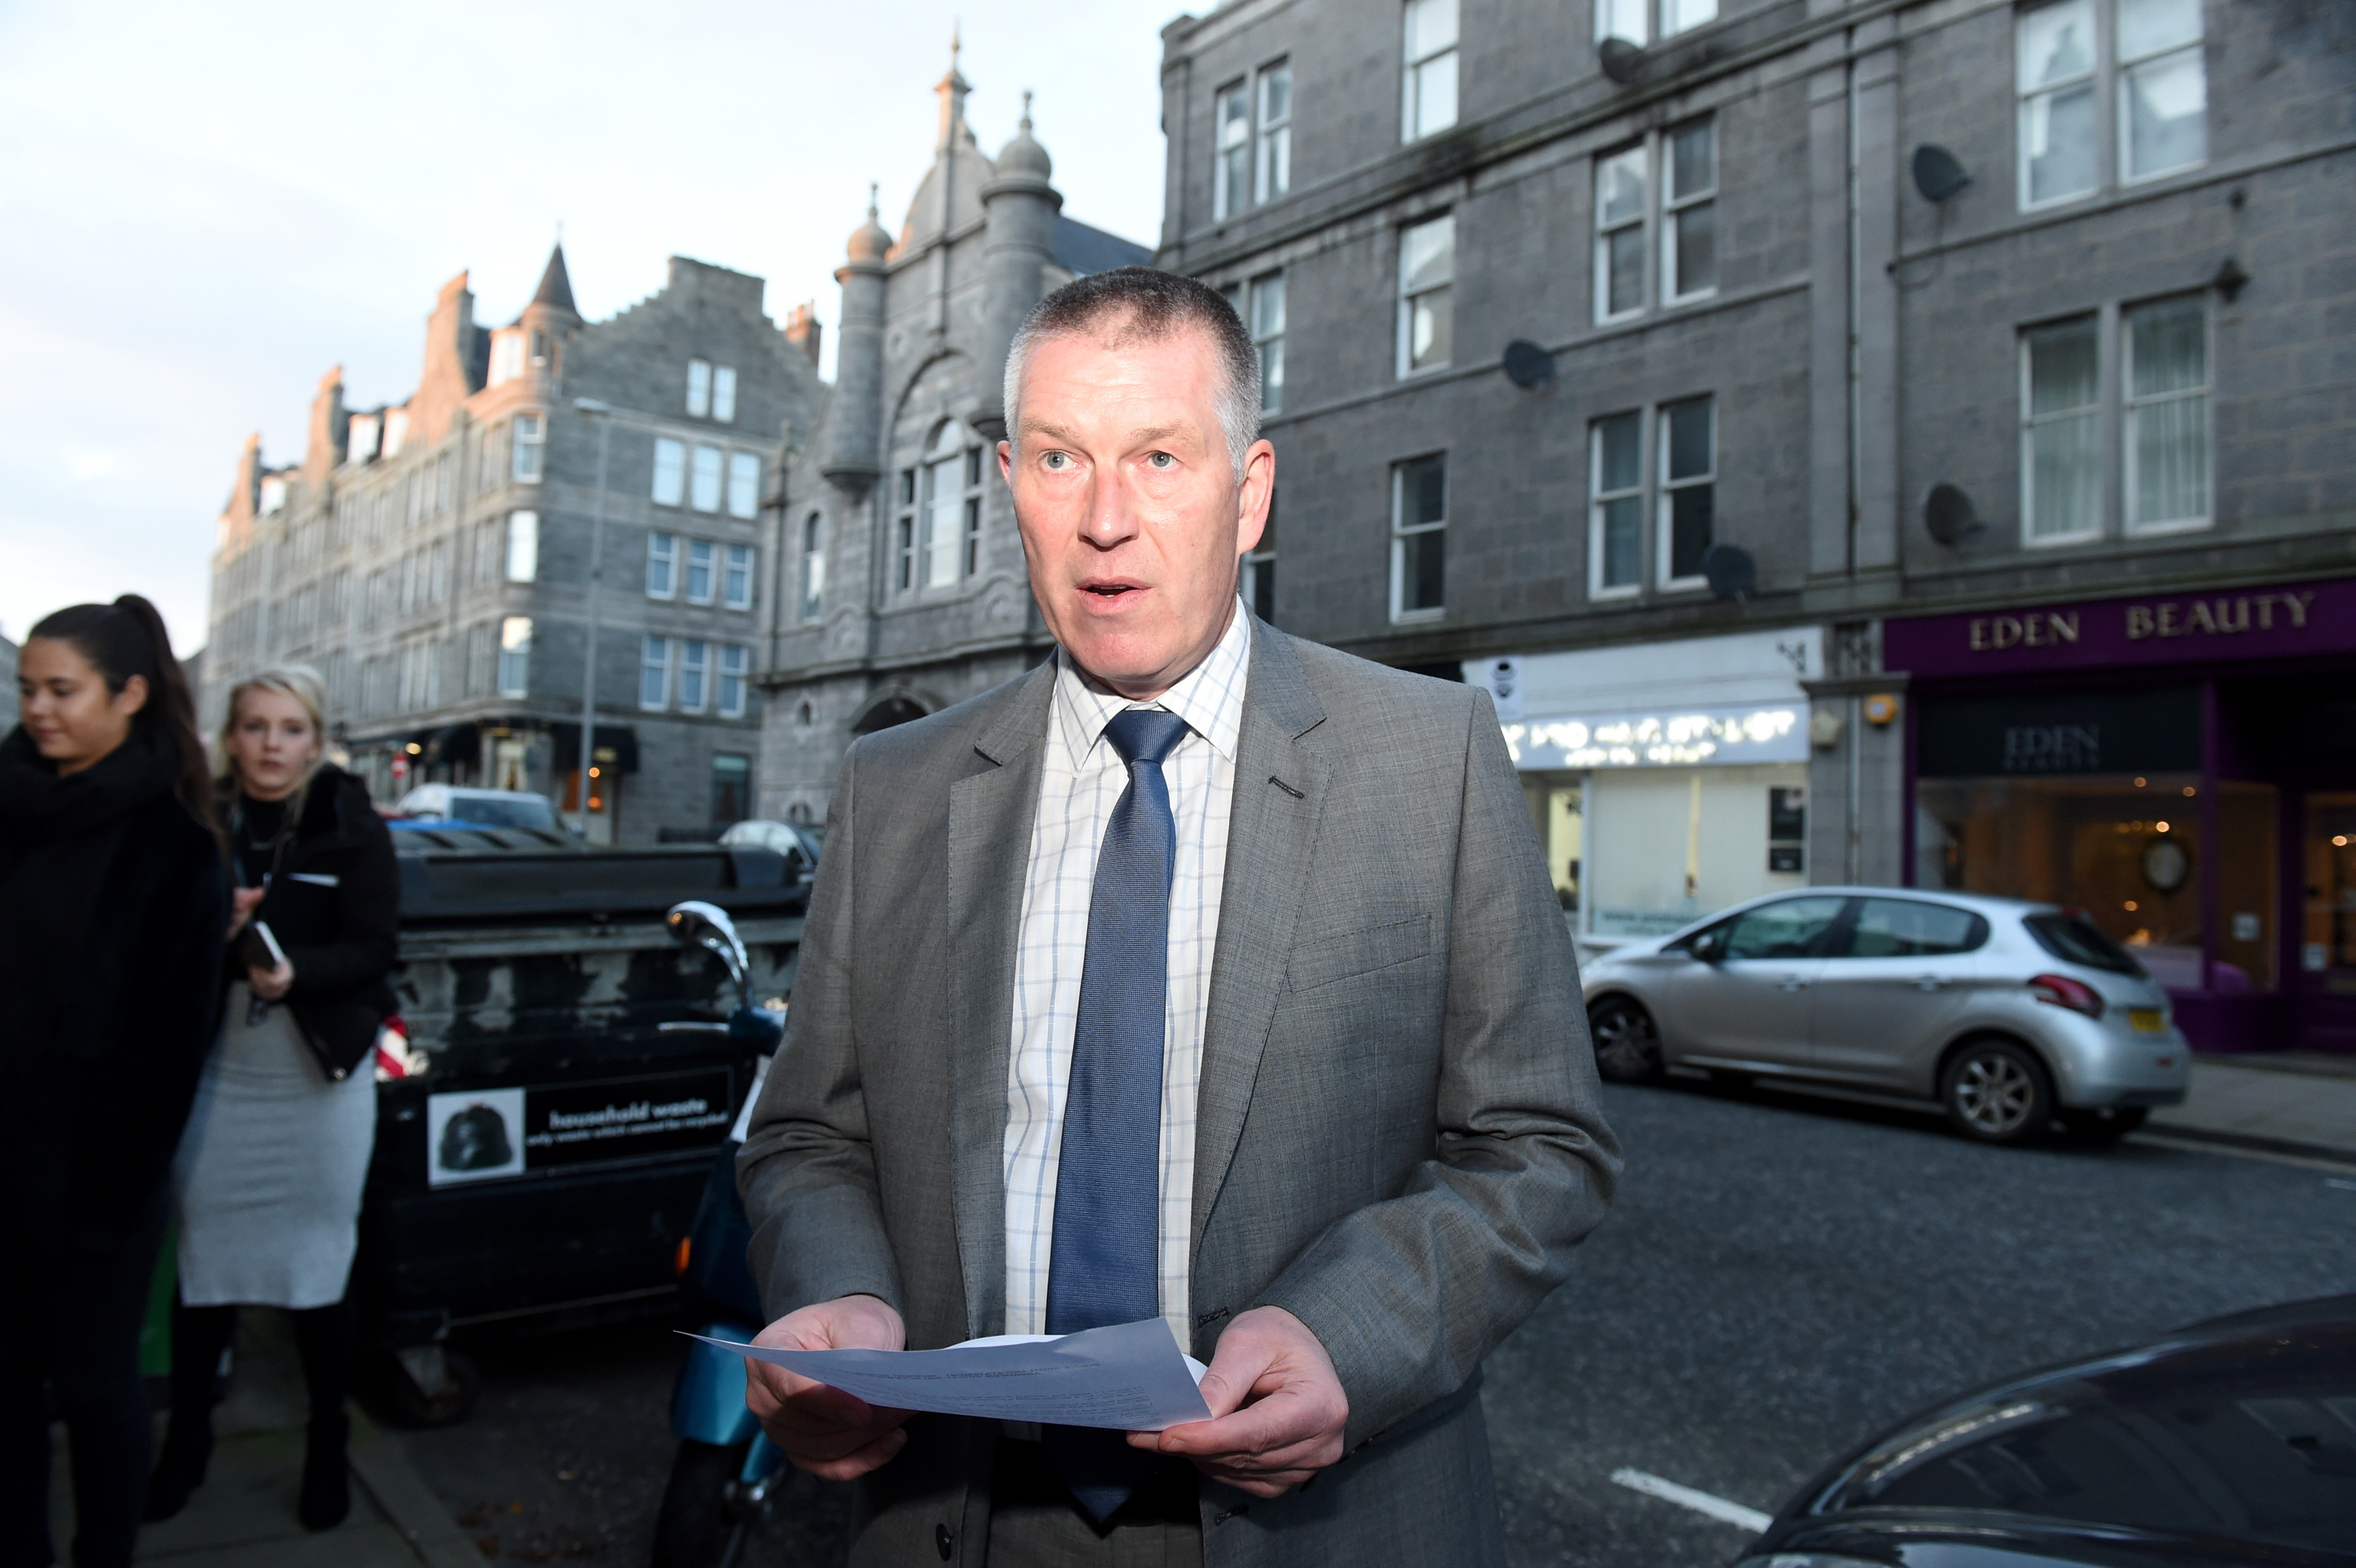 Chief Inspector Iain Smith holds a press call on Rosemount Viaduct, Aberdeen.  Picture by Jim Irvine